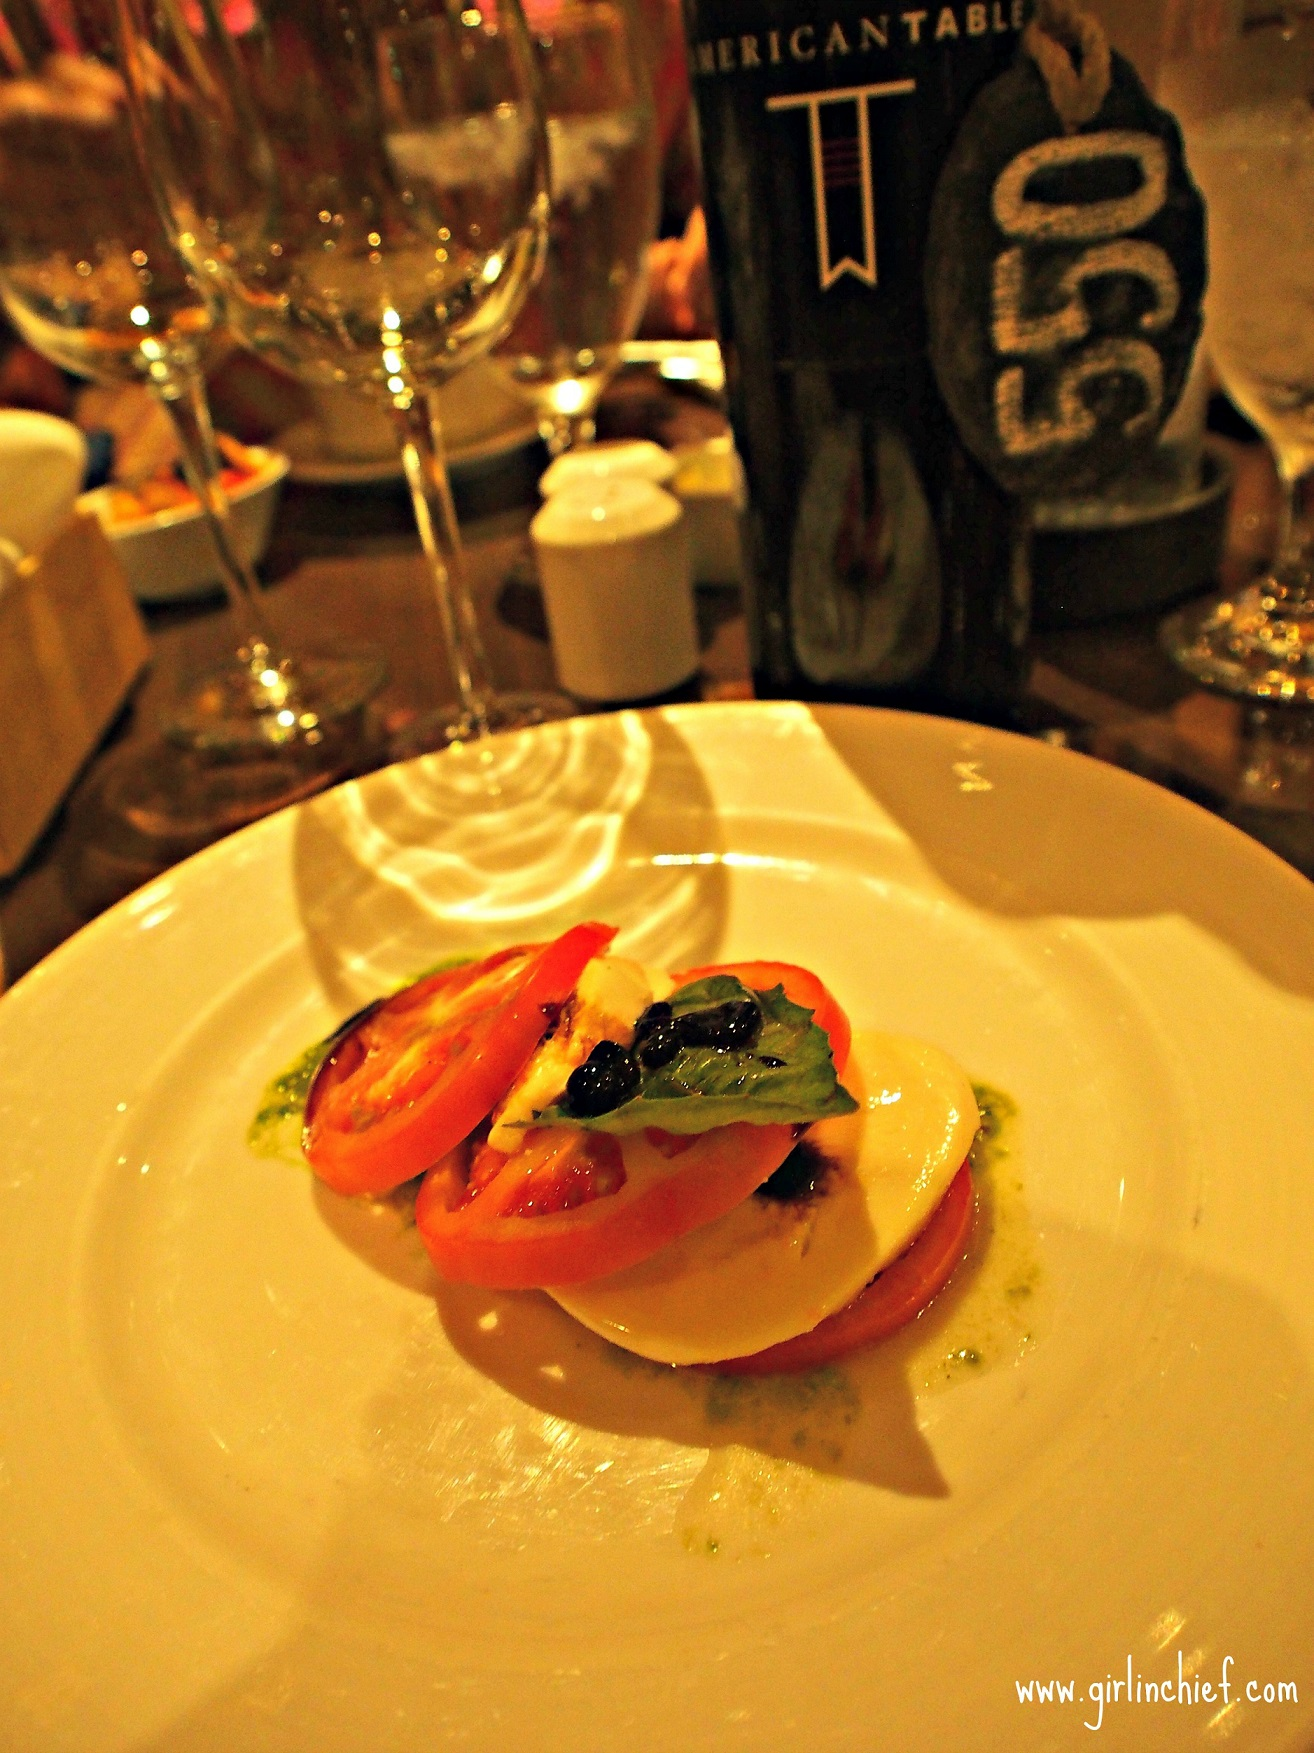 caprese-salad-carnival-freedom-american-table-dinner